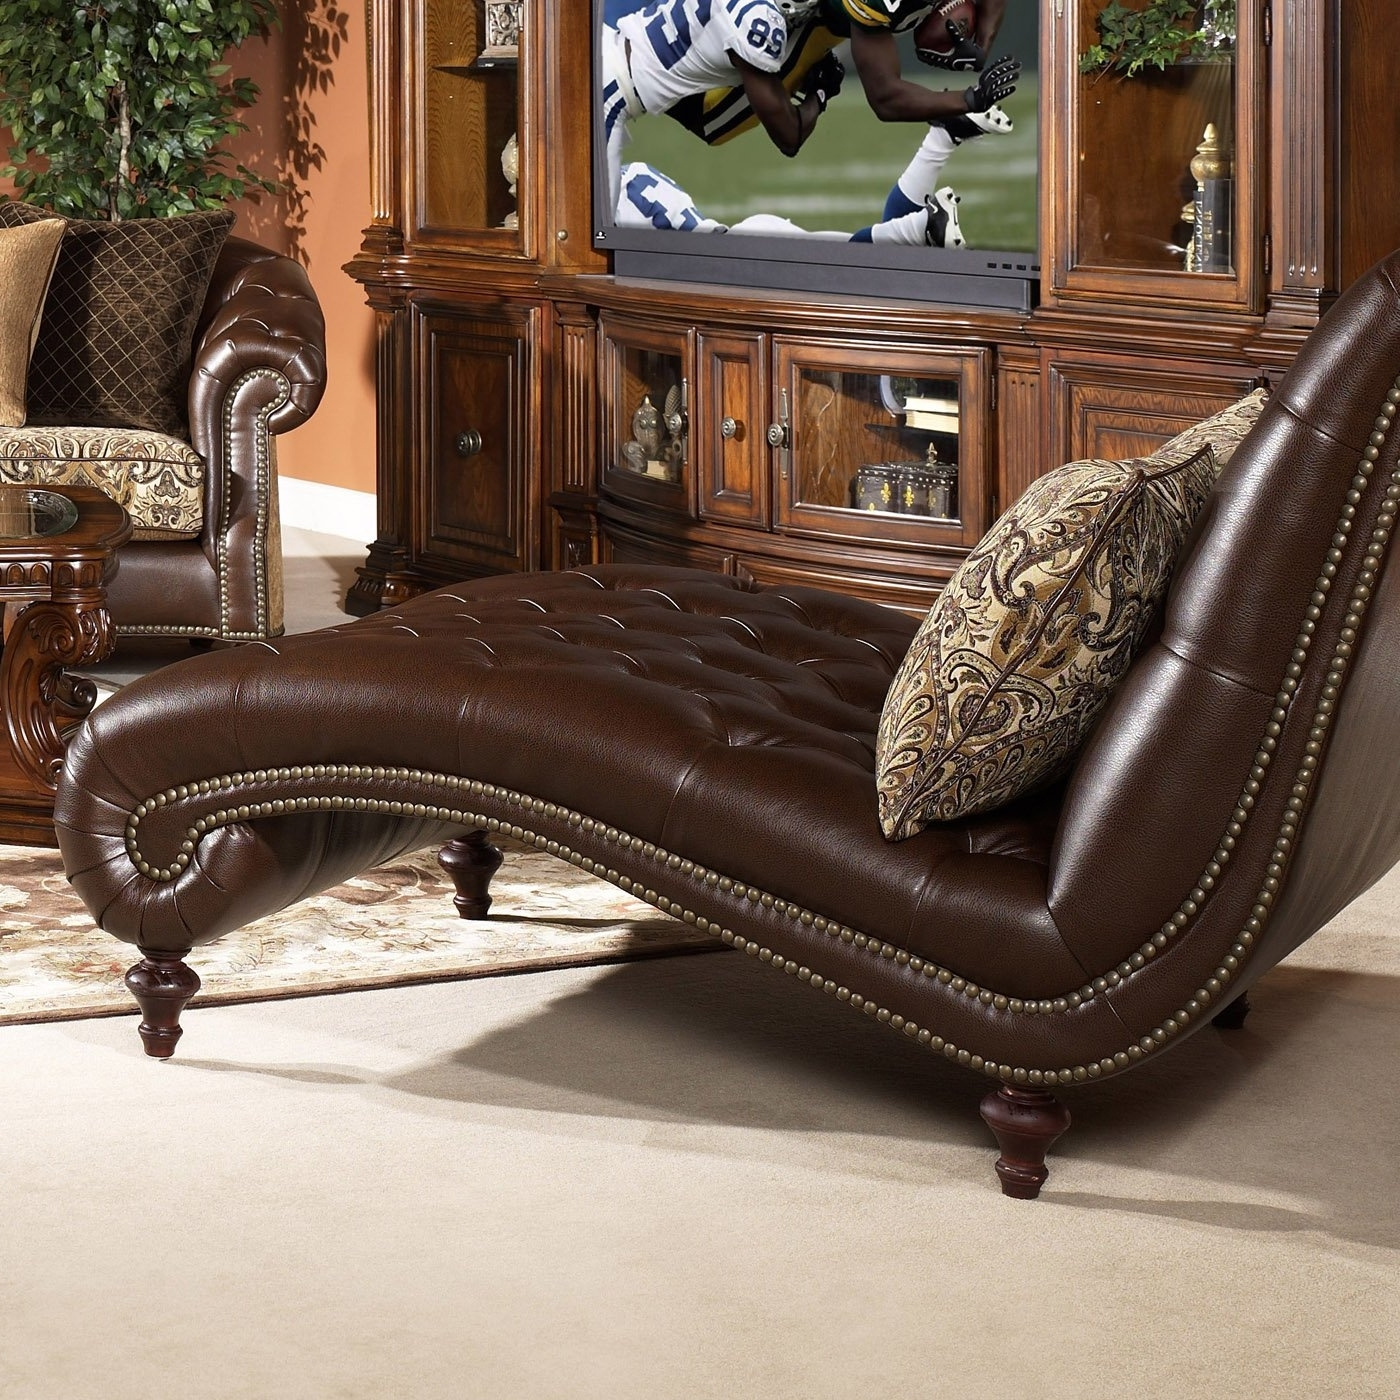 Extra Wide Chaise Lounges Intended For Widely Used Top Leather Chaise Lounge Chair — Bed And Shower : Repair A (View 7 of 15)